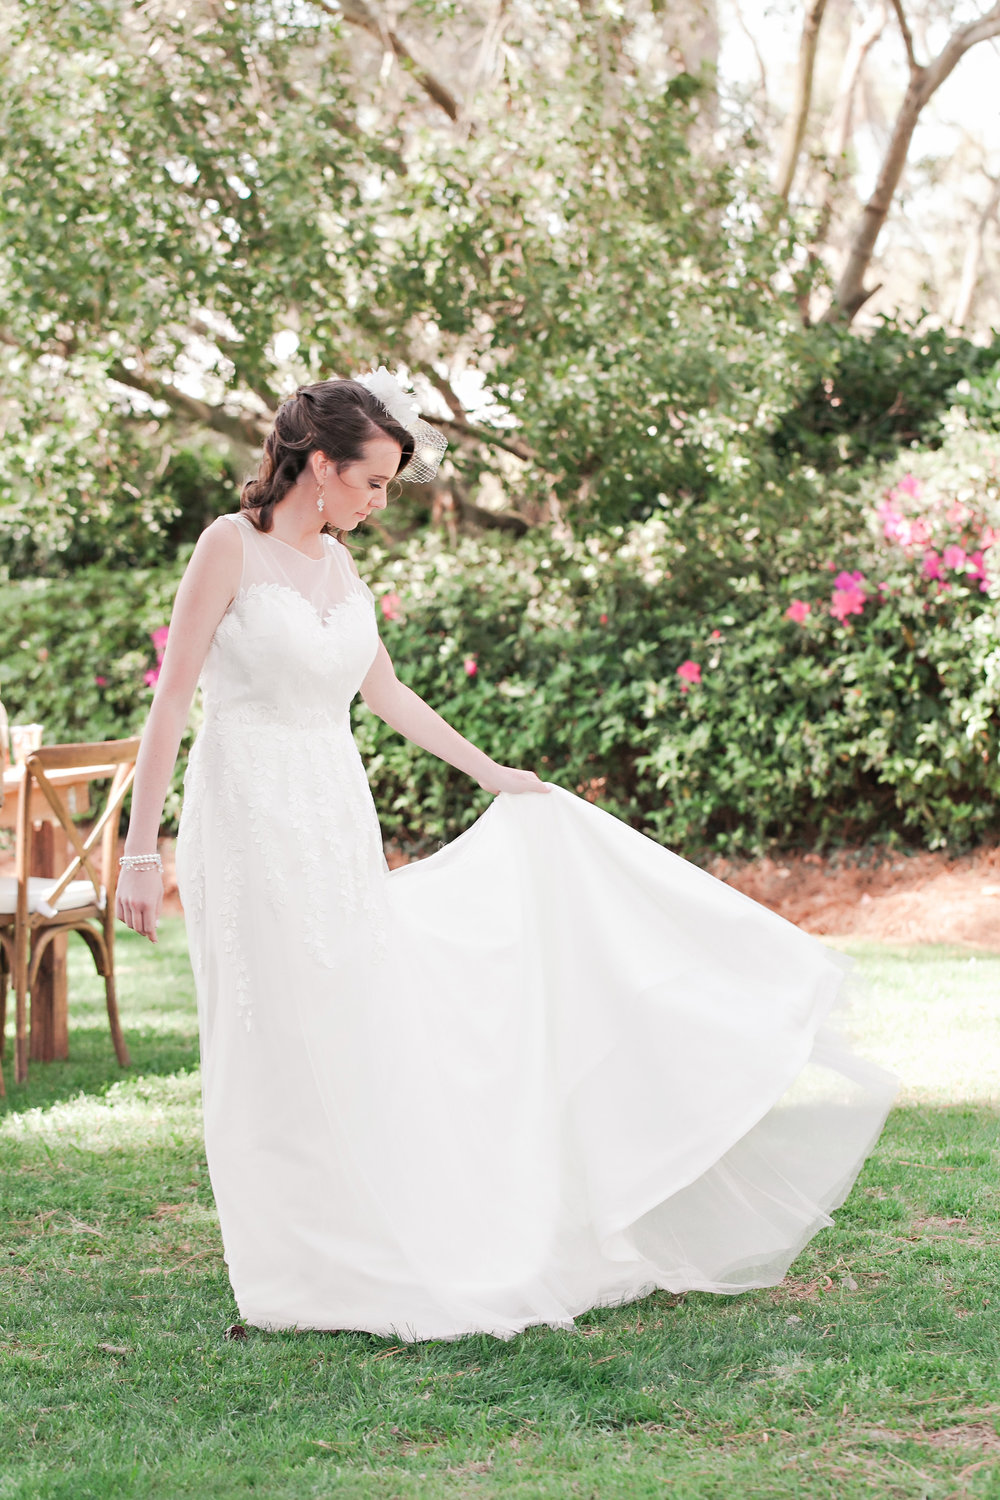 heather-kline-photography-oldfield-river-club-wedding-savannah-wedding-photographer-ti-adora-ivory-and-beau-bridal-boutique-savannah-wedding-dresses-savannah-bridal-boutique-savannah-bridal-gowns-bridal-accessories-savannah-wedding-planner-21.jpg